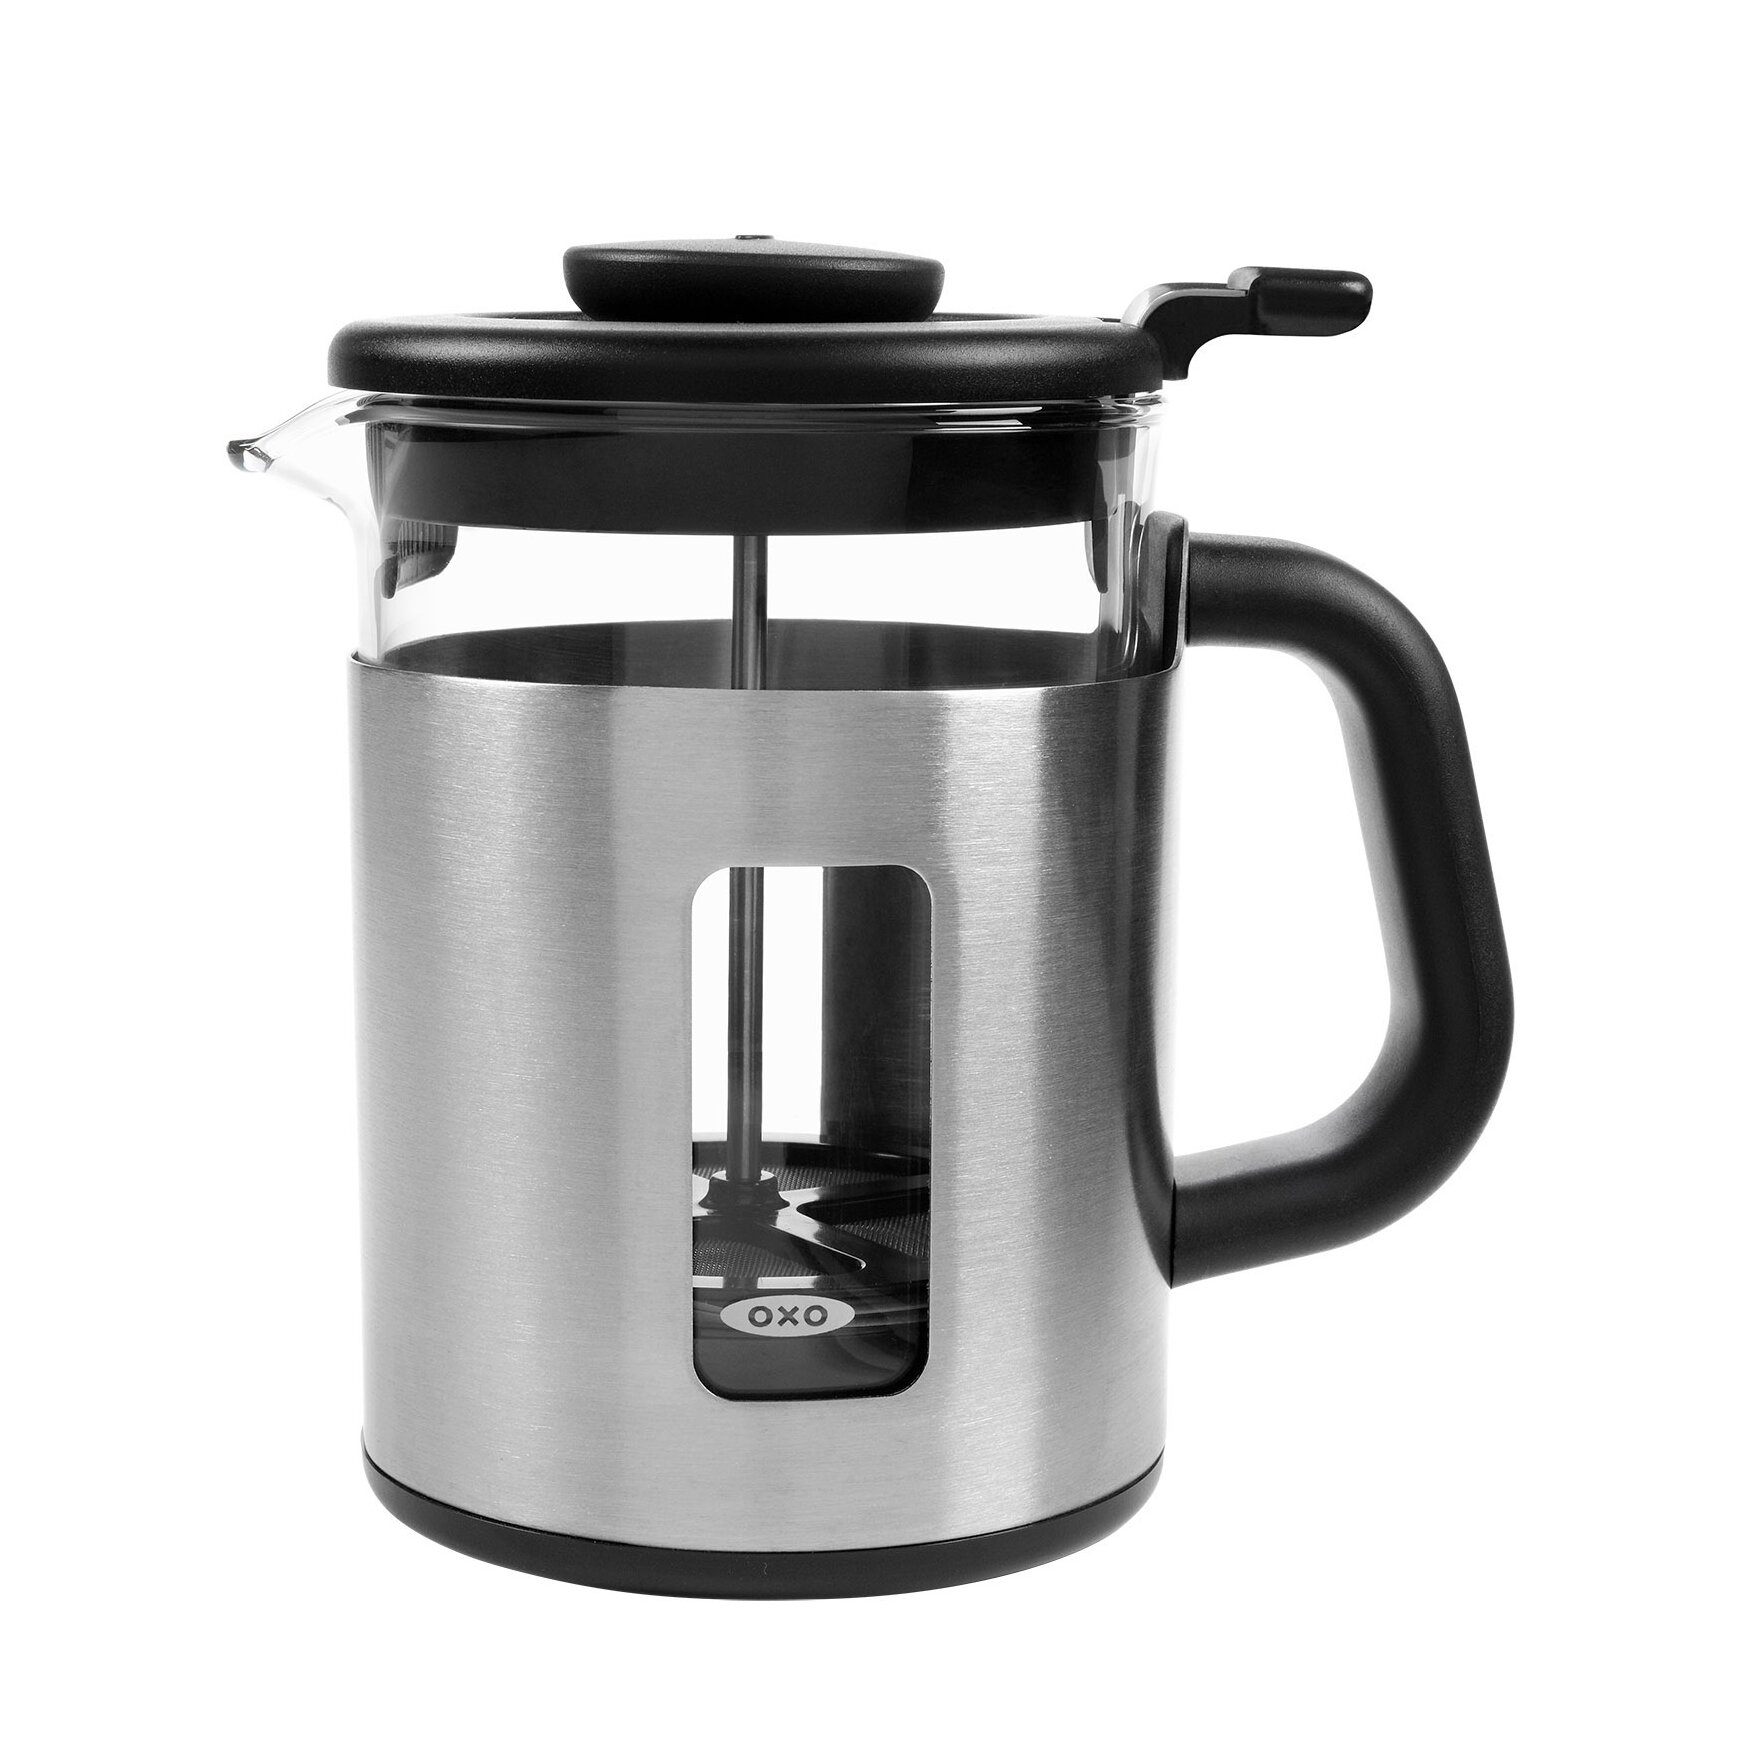 Oxo Coffee Maker Reviews : OXO Good Grips French Press Coffee Maker & Reviews Wayfair